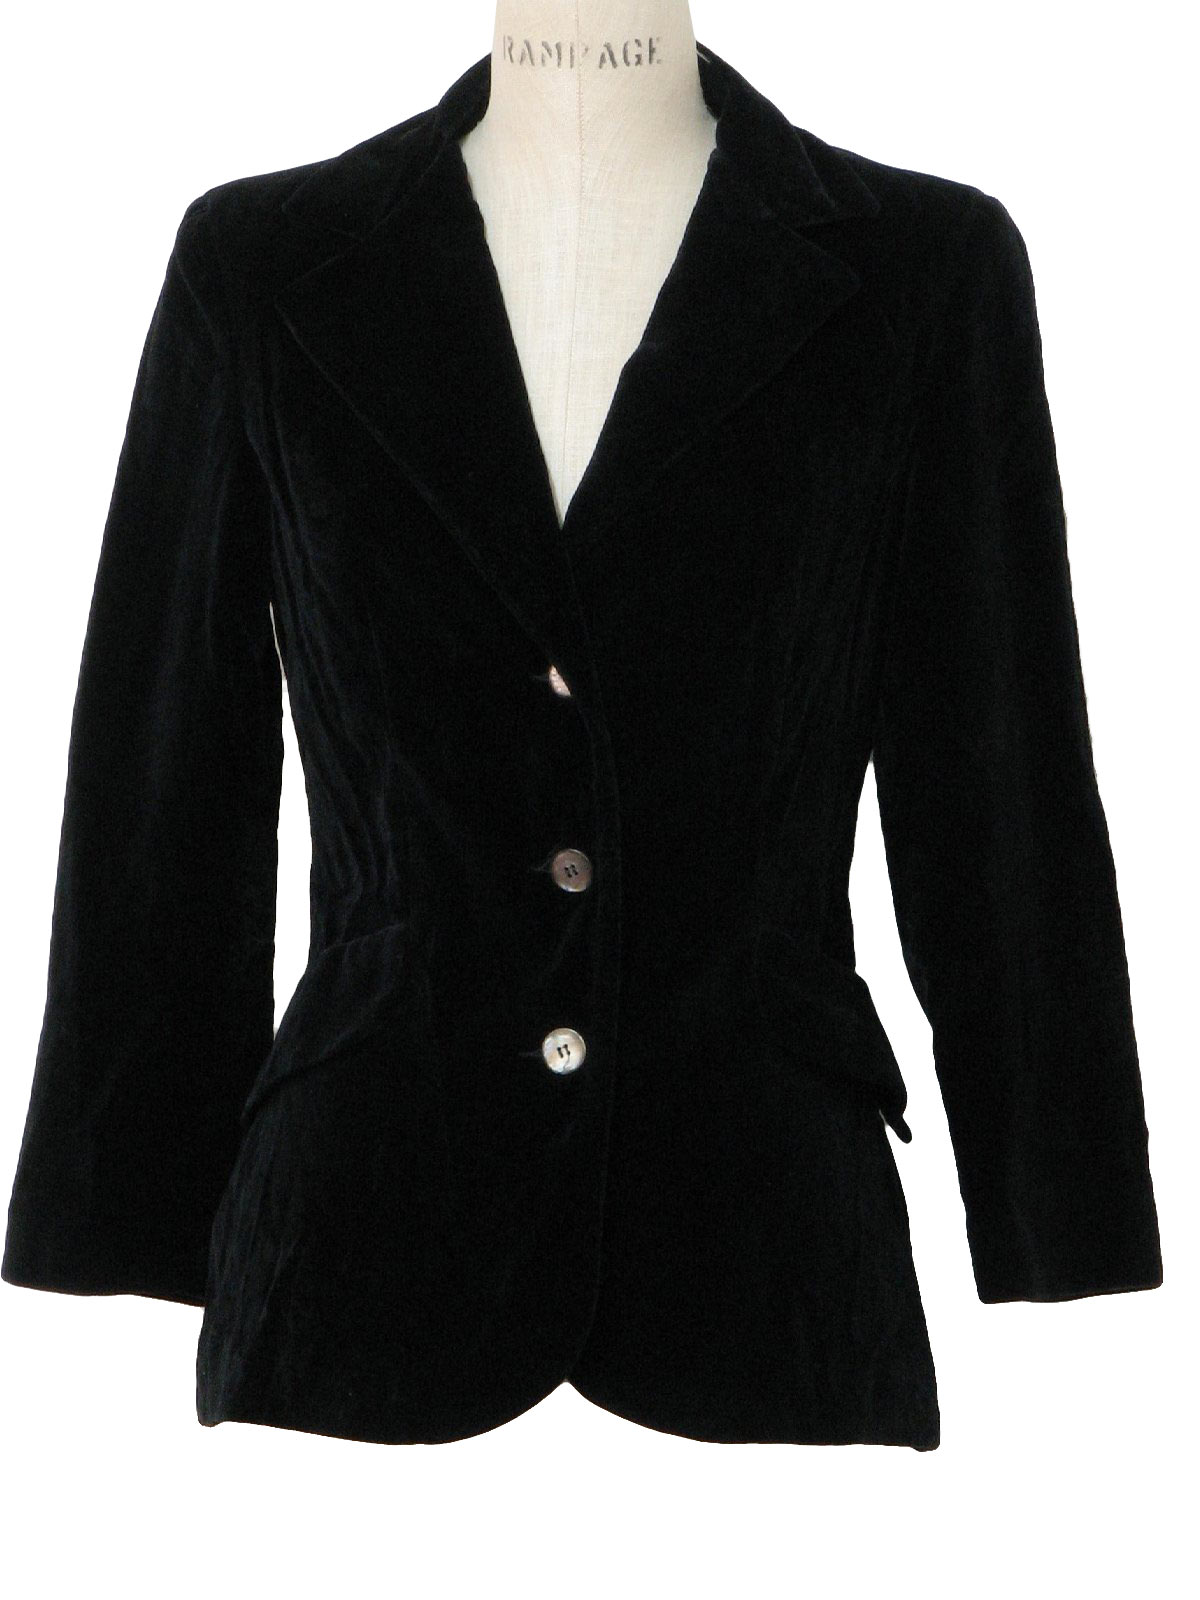 Womens Black Blazer Jacket Photo Album - Reikian